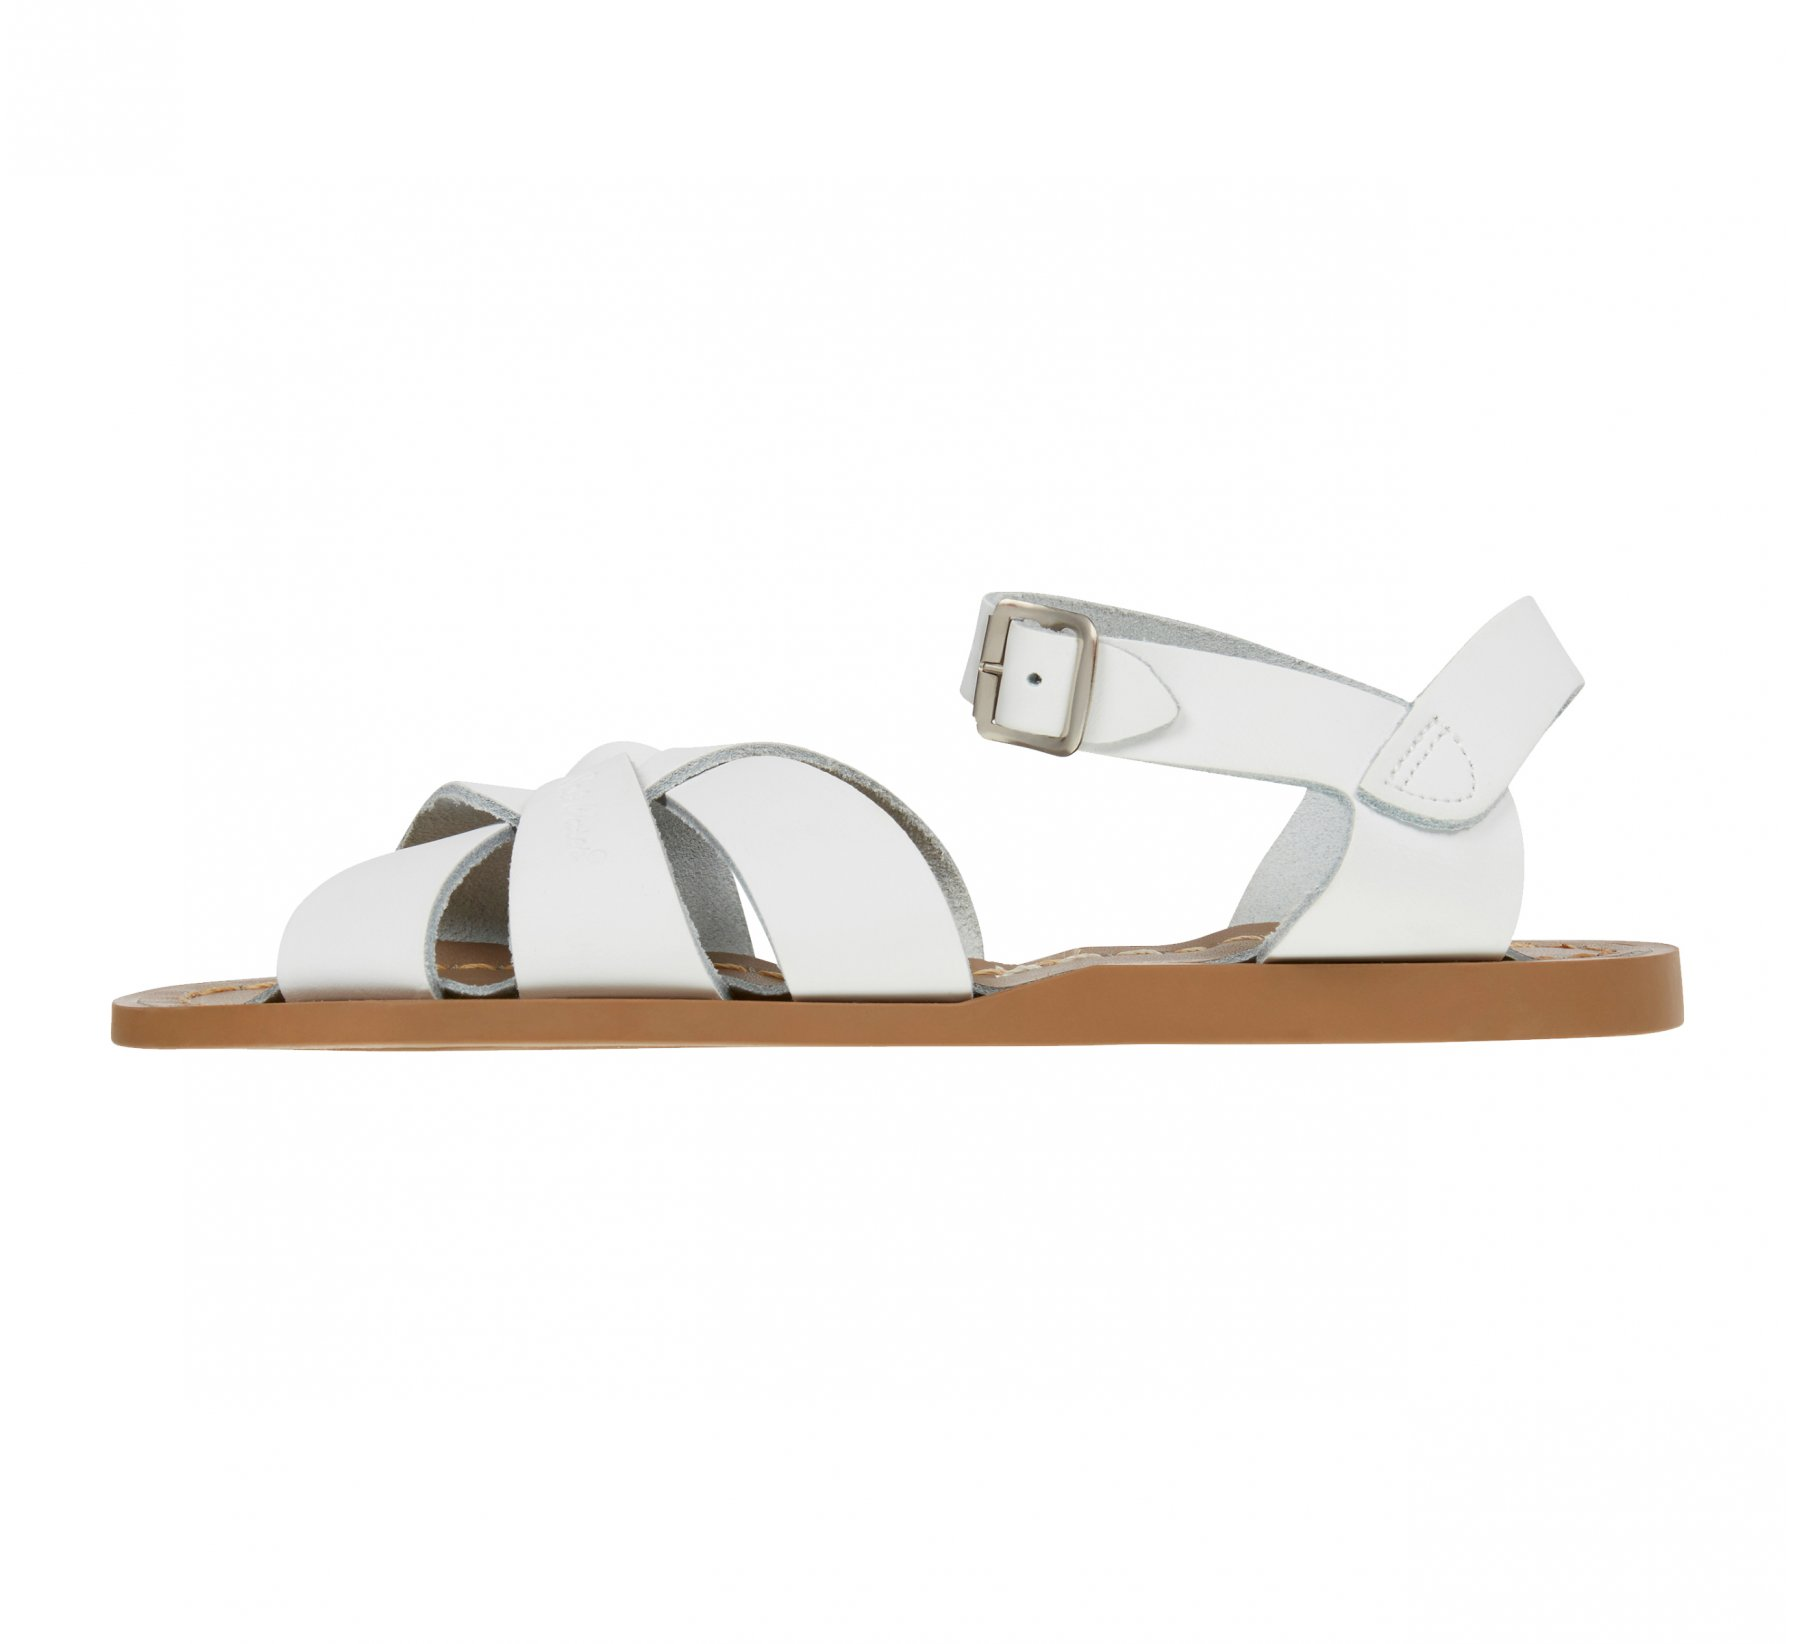 Original Putih - Salt Water Sandals